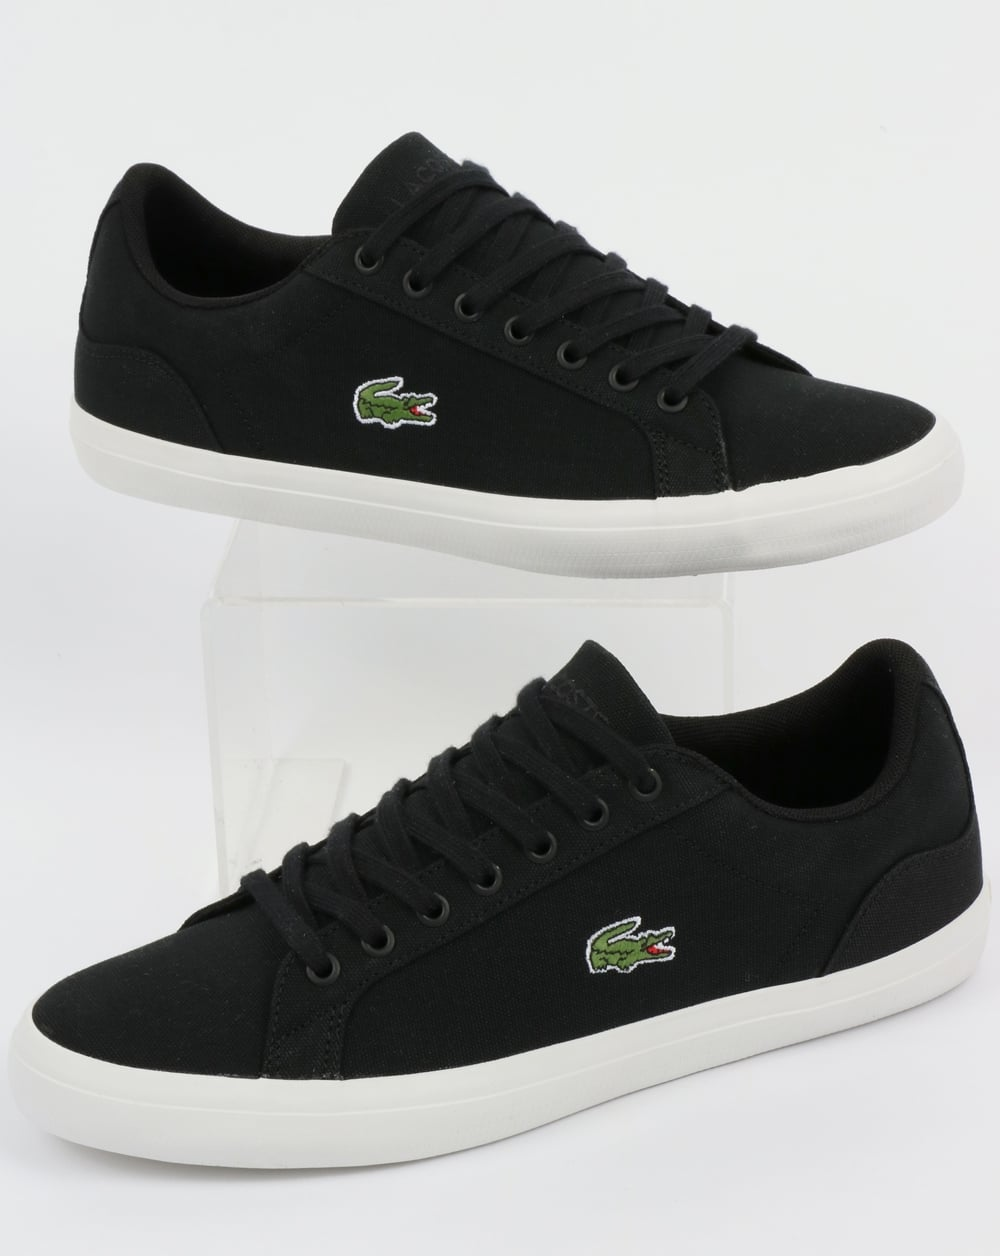 4fb07f7d7 Lacoste Lacoste Footwear Lerond Canvas Trainers Black